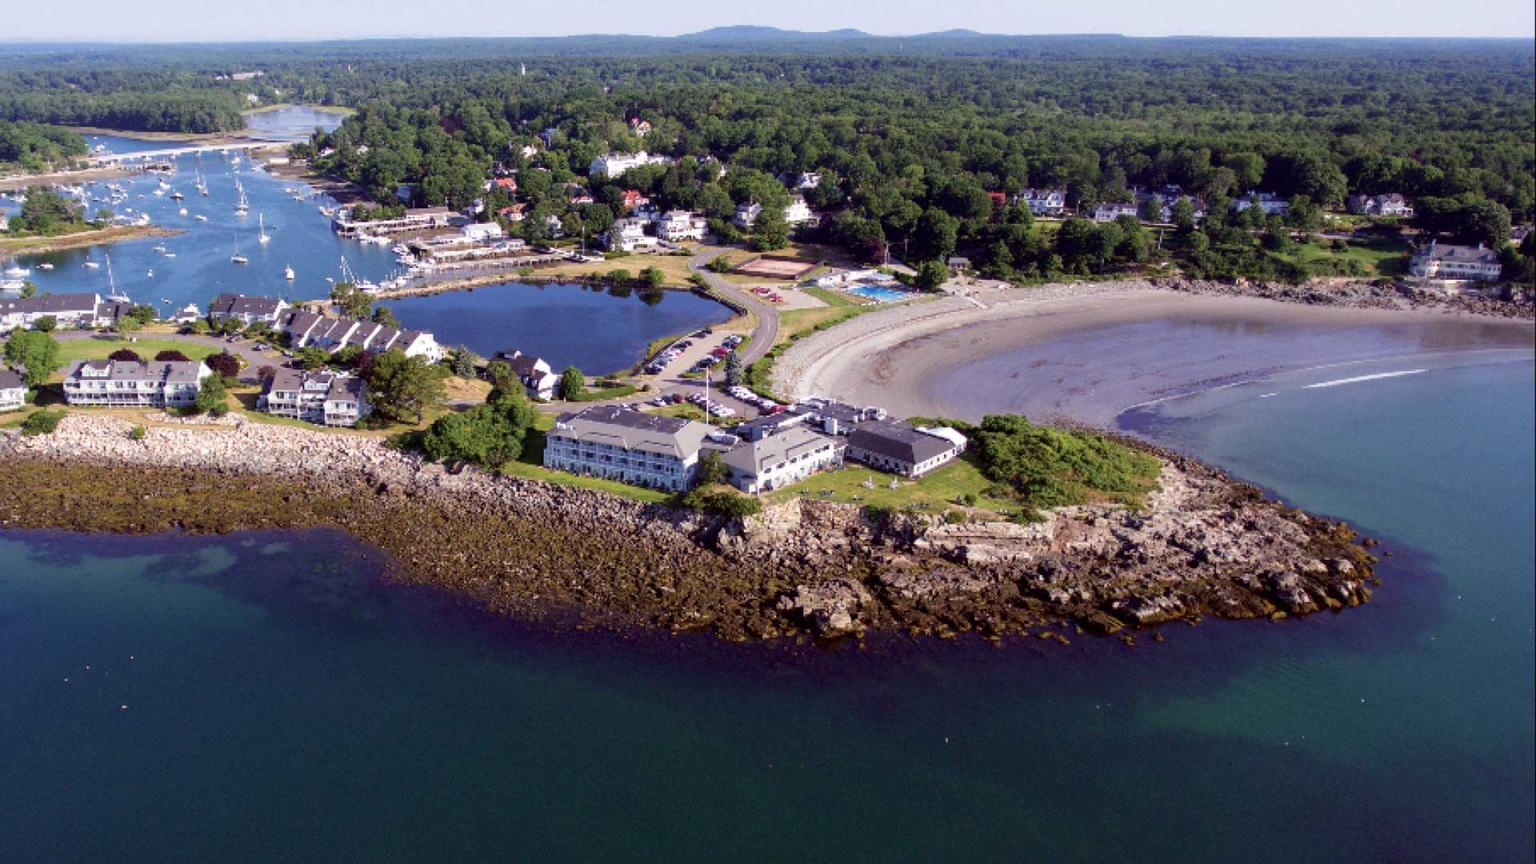 Stage Neck Inn sits on the point that is jutting into the Ocean. Along the left side is the York River connecting to York Harbor. To the right of the Inn is Harbor Beach and the Inn's outdoor pool and tennis club.